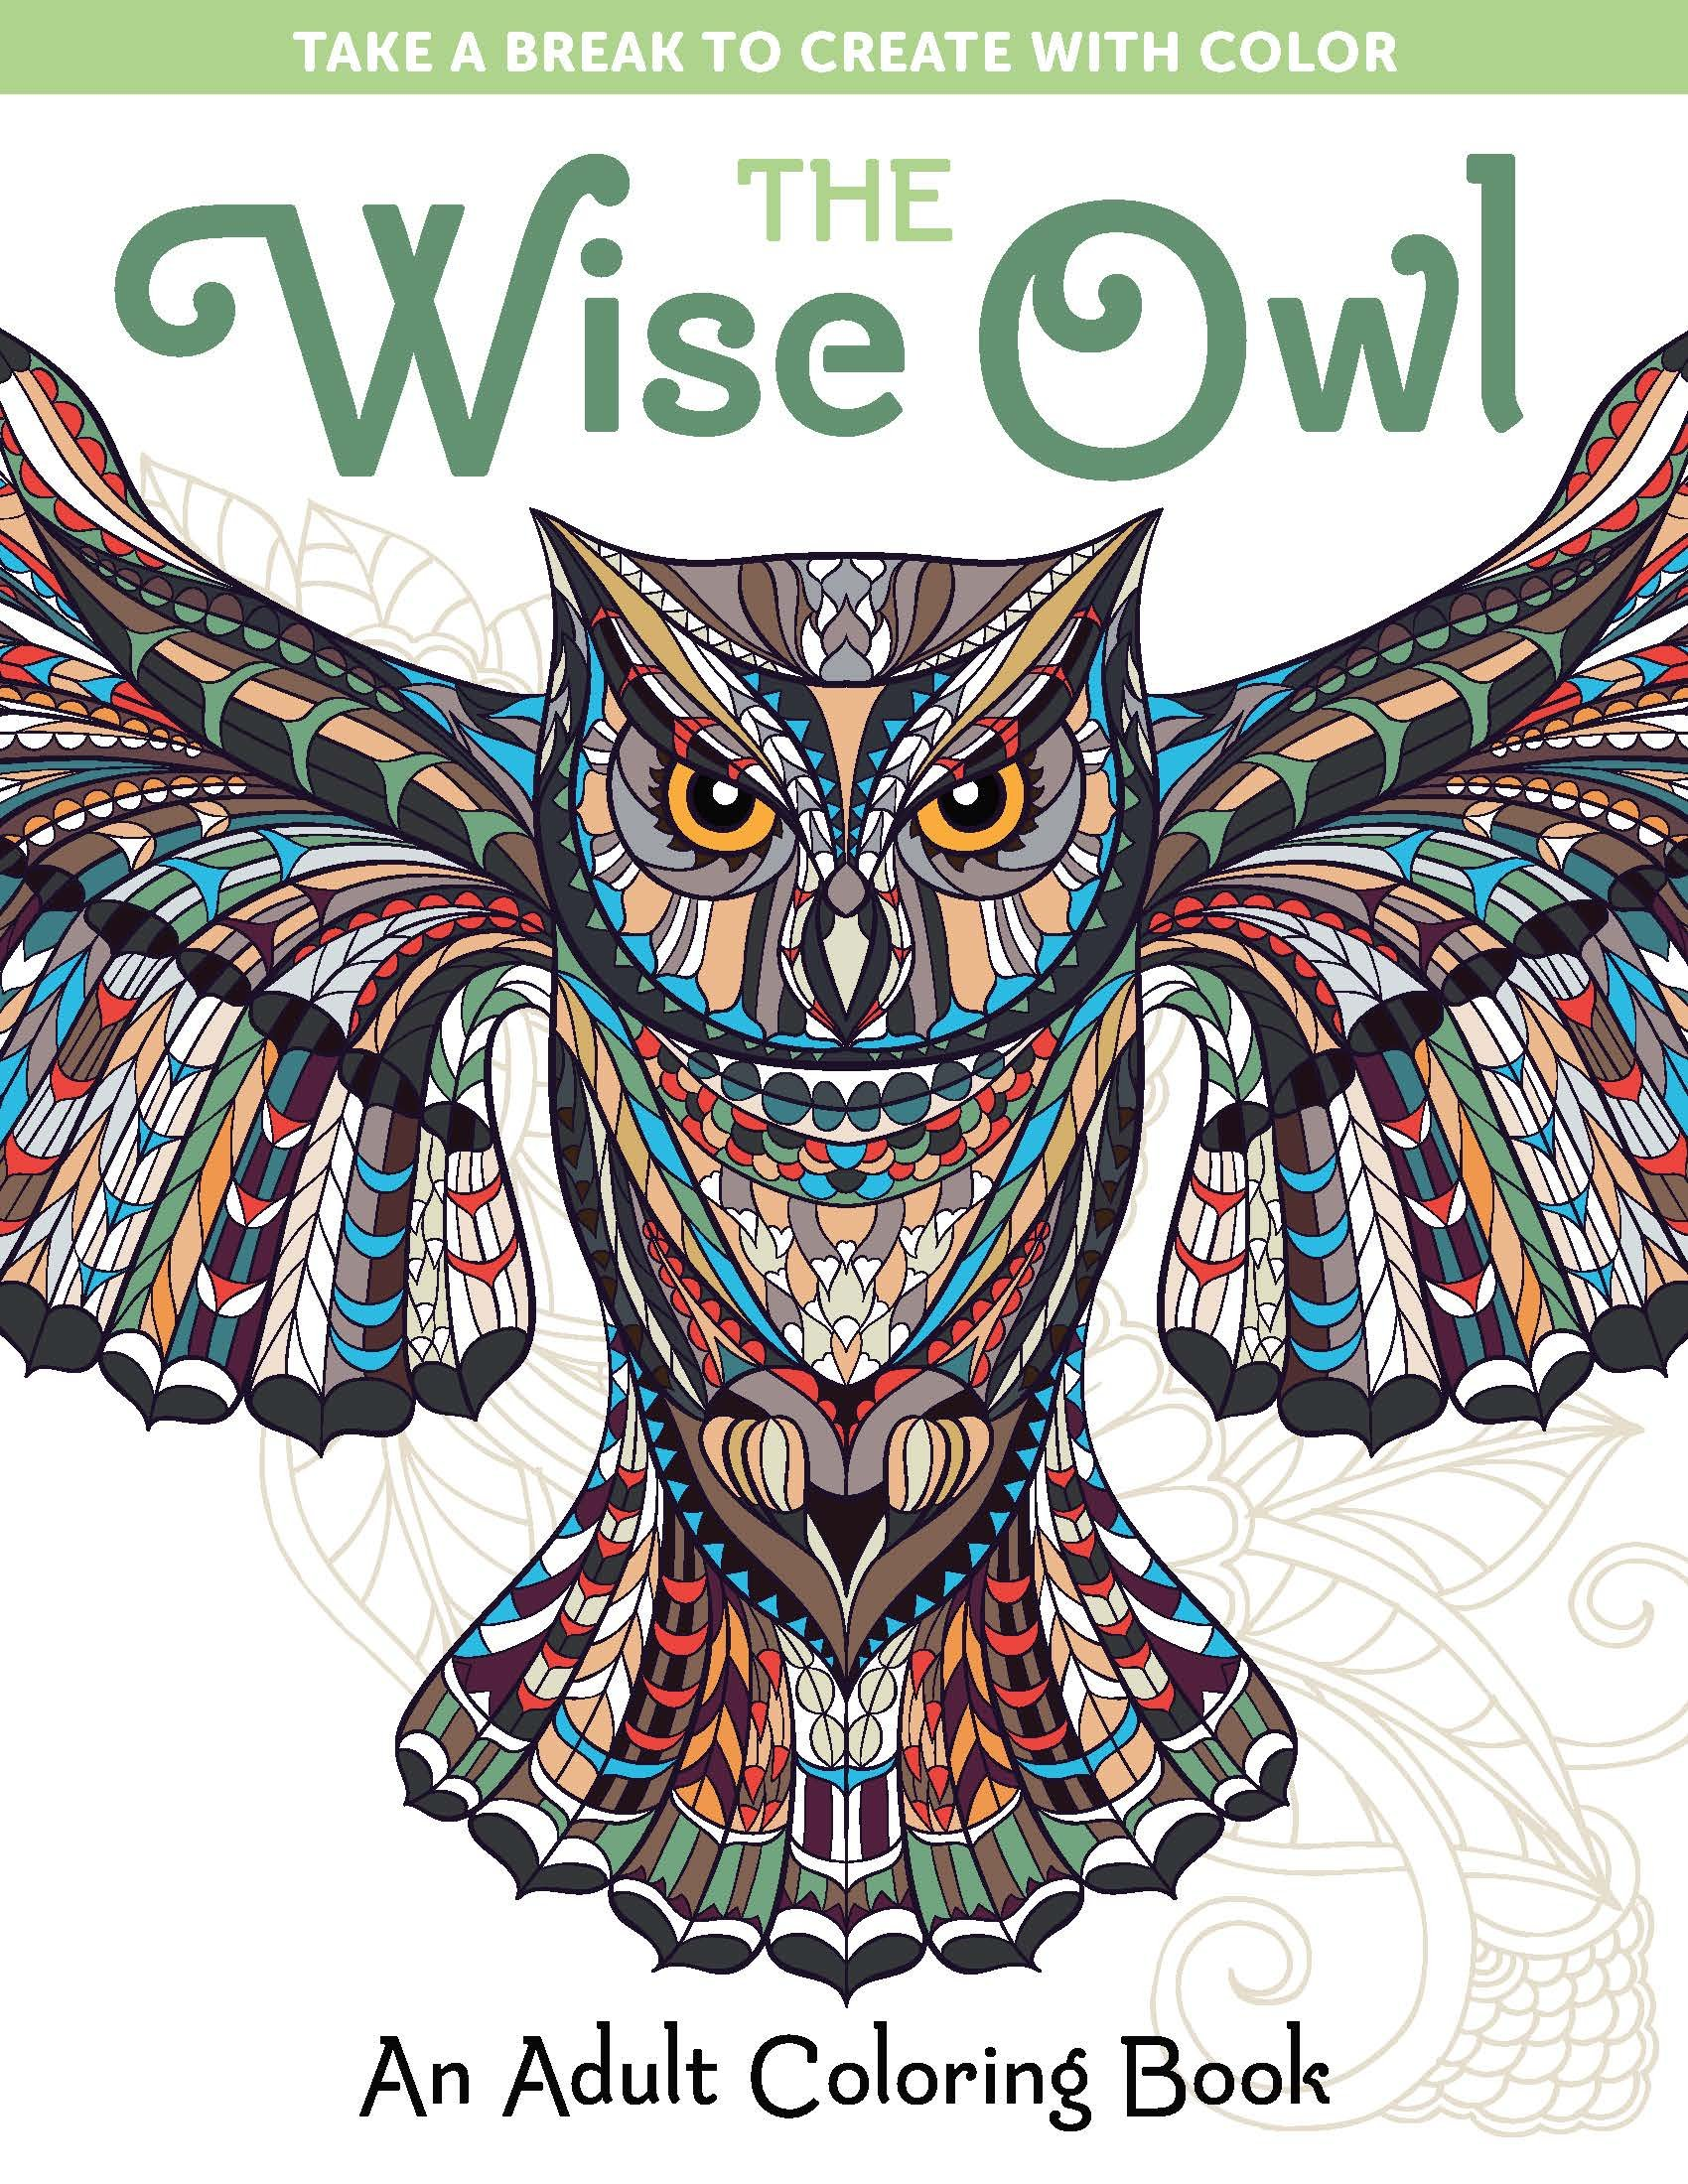 Amazon: The Wise Owl: An Adult Coloring Book (take A Break To Create  With Color) (9781940611495): Spring House Press: Books